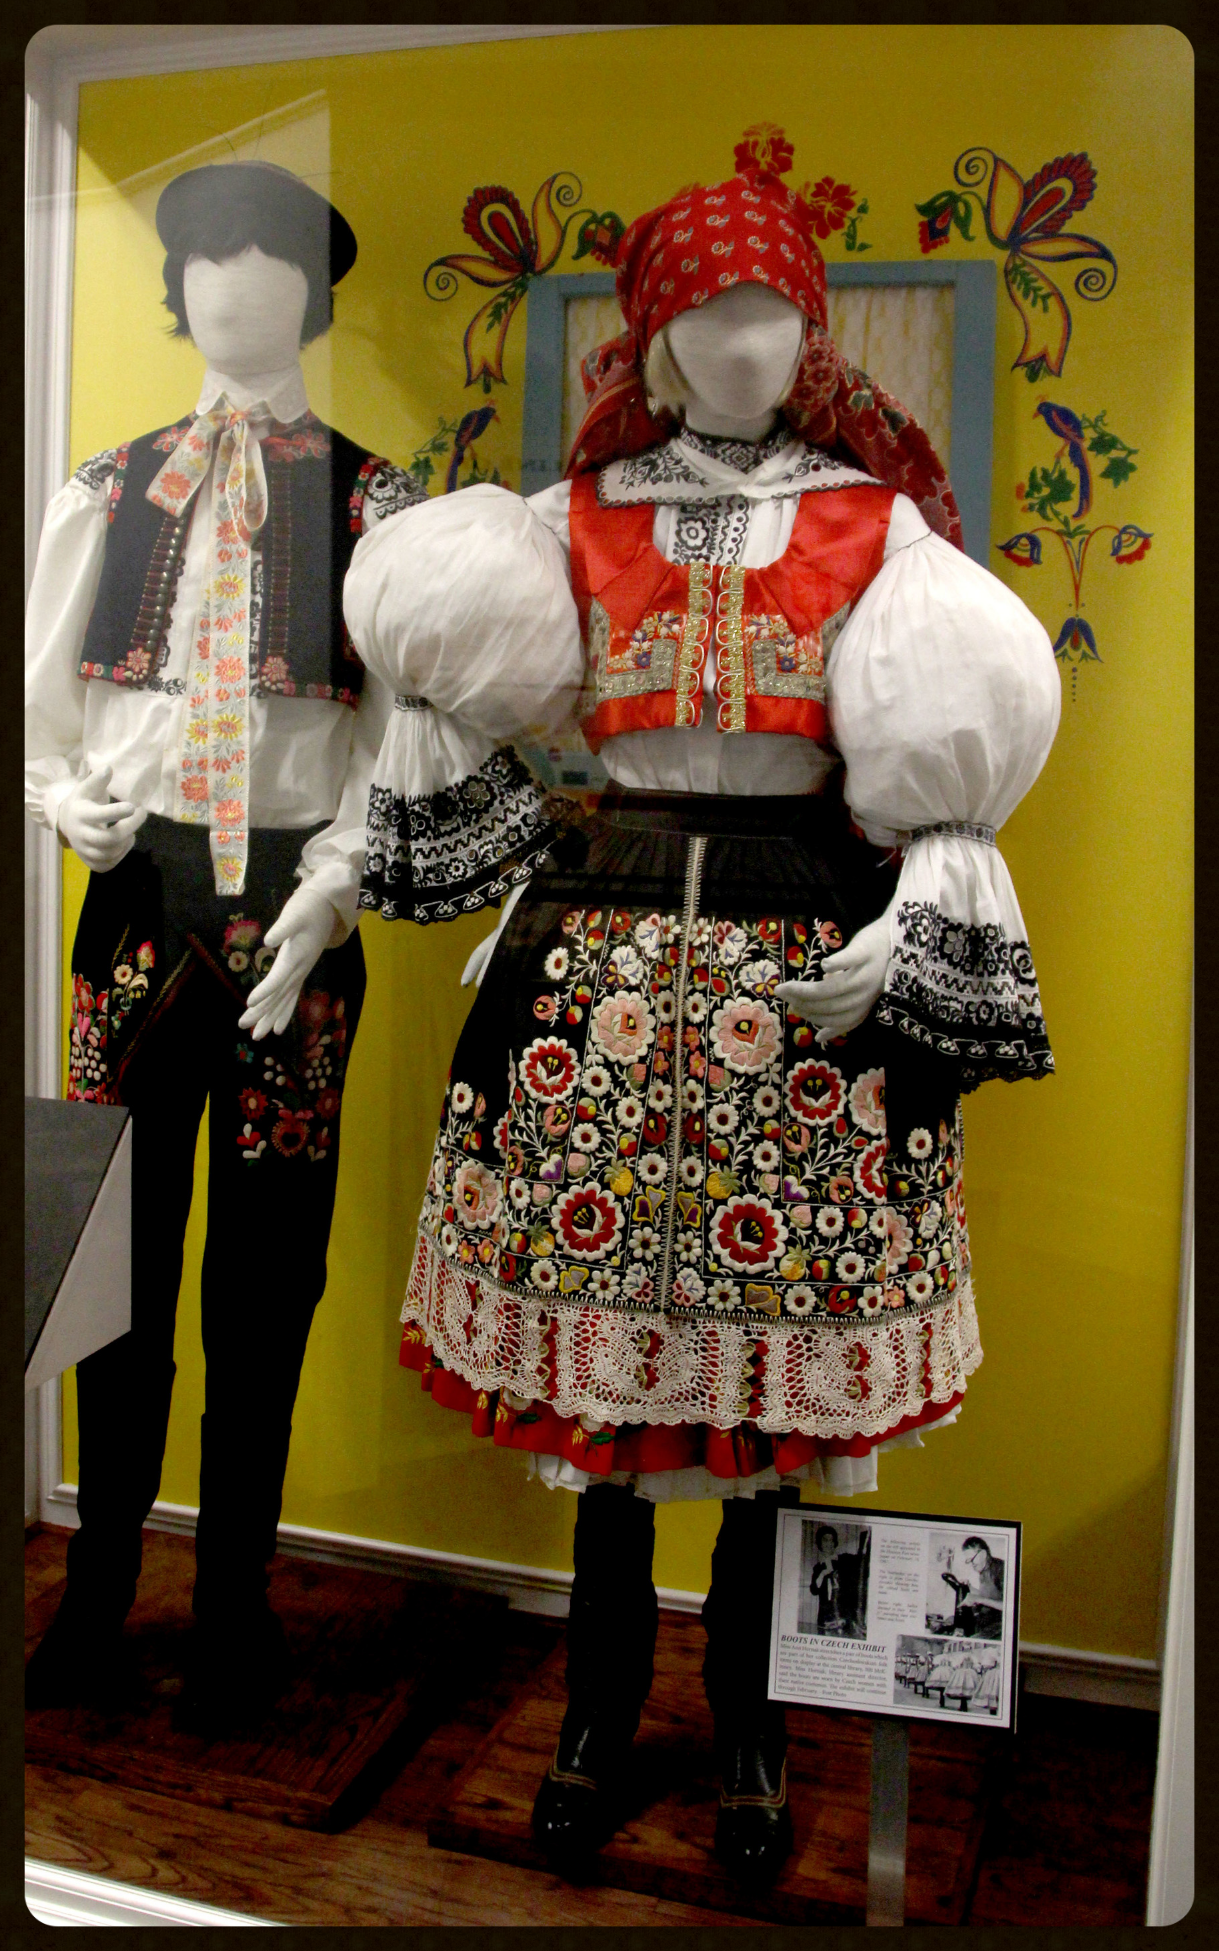 Beautiful Czech Kroj or costumes are often adorned with glass beading, silver and gold thread, elaborate embroidery or fabric dyed with indigo in a hand-stamped wax-resist design. Each region is represented by a unique kroj design.